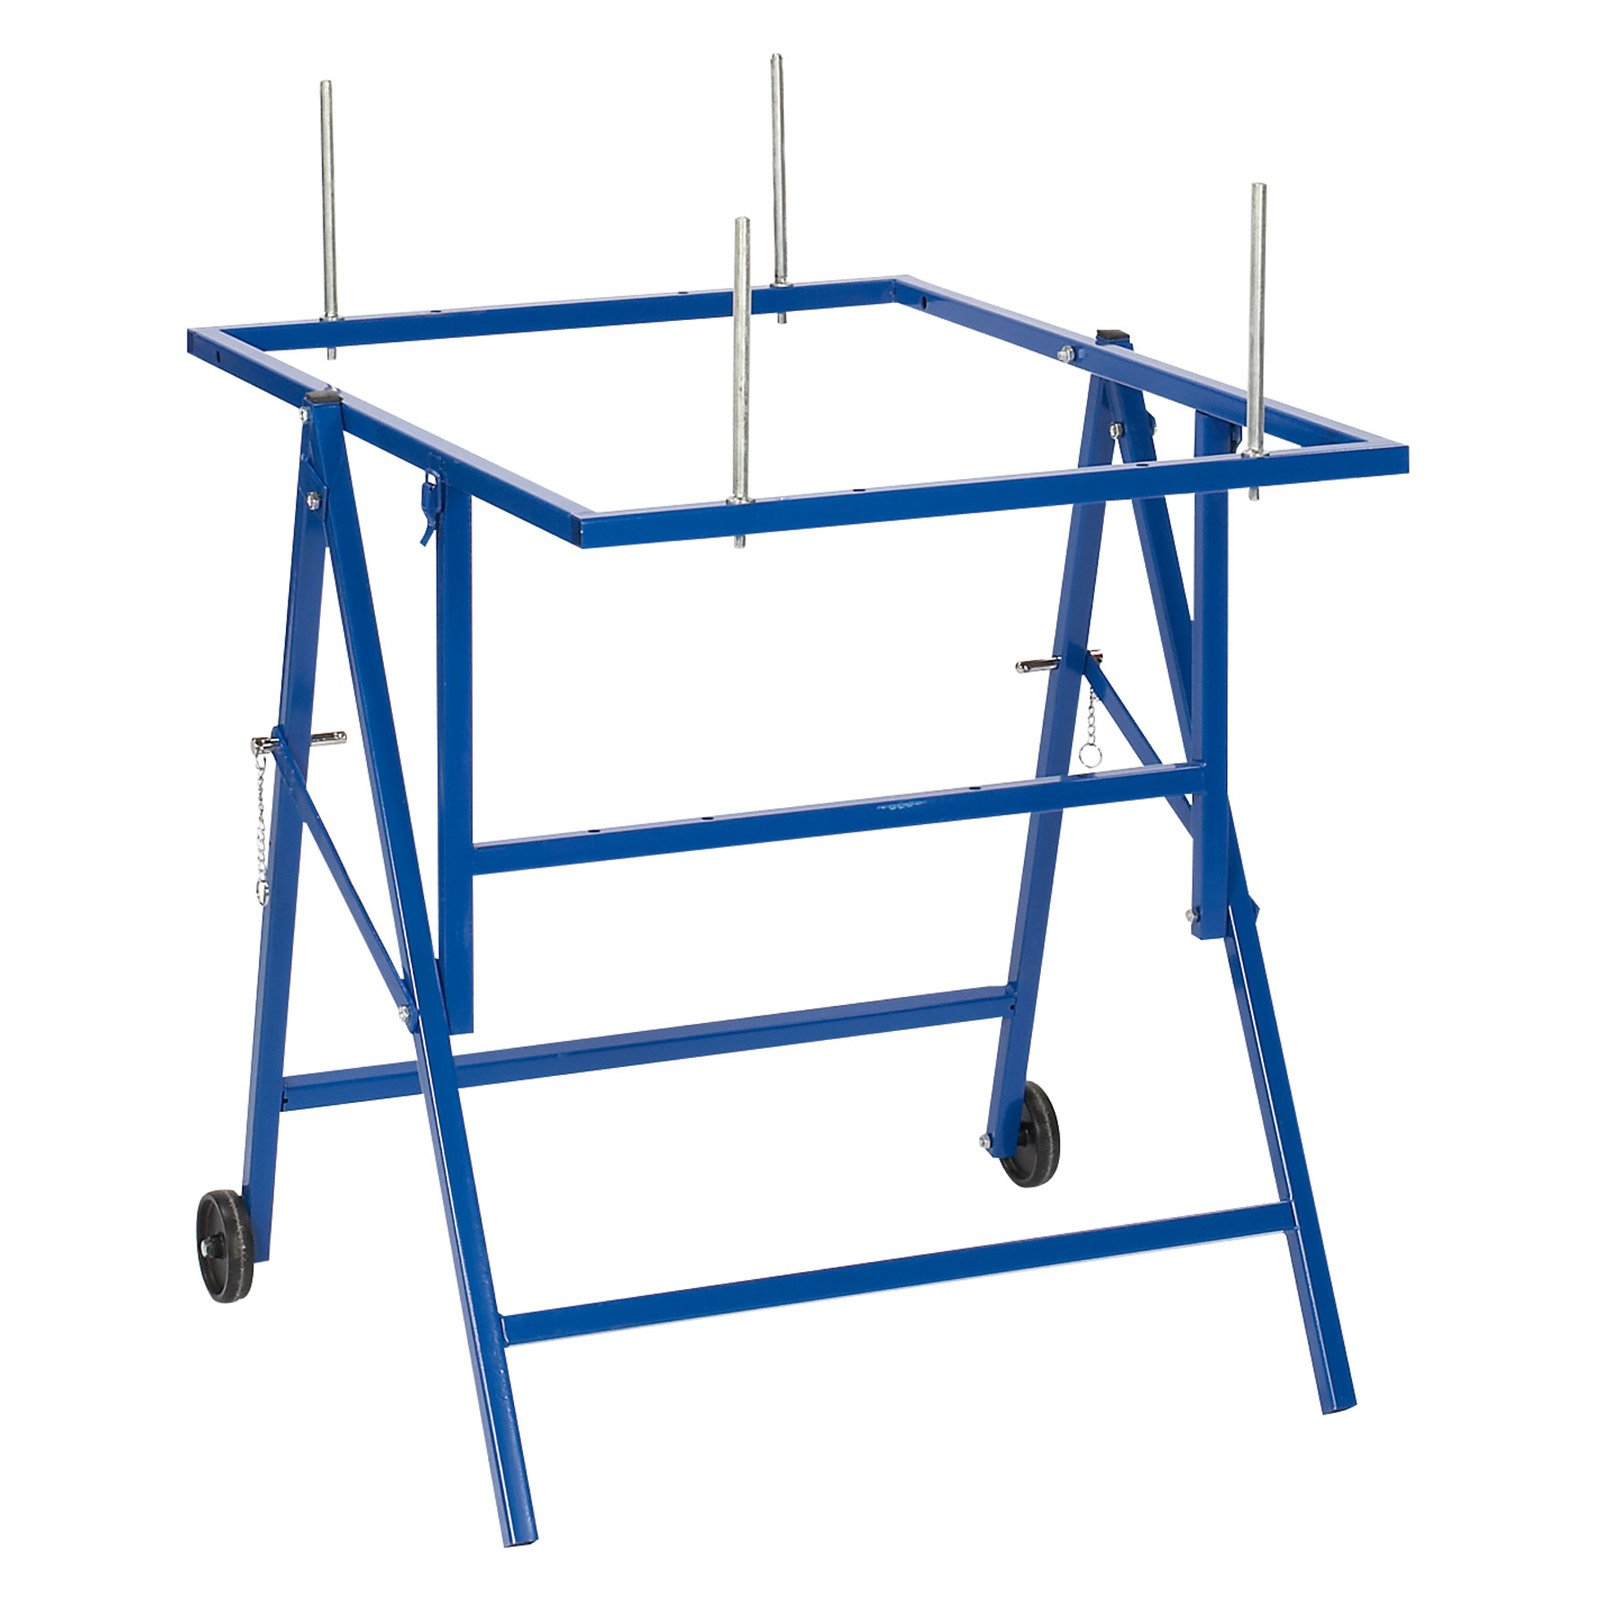 Torin PBE Mobile Folding Tilting Auto Body Bench